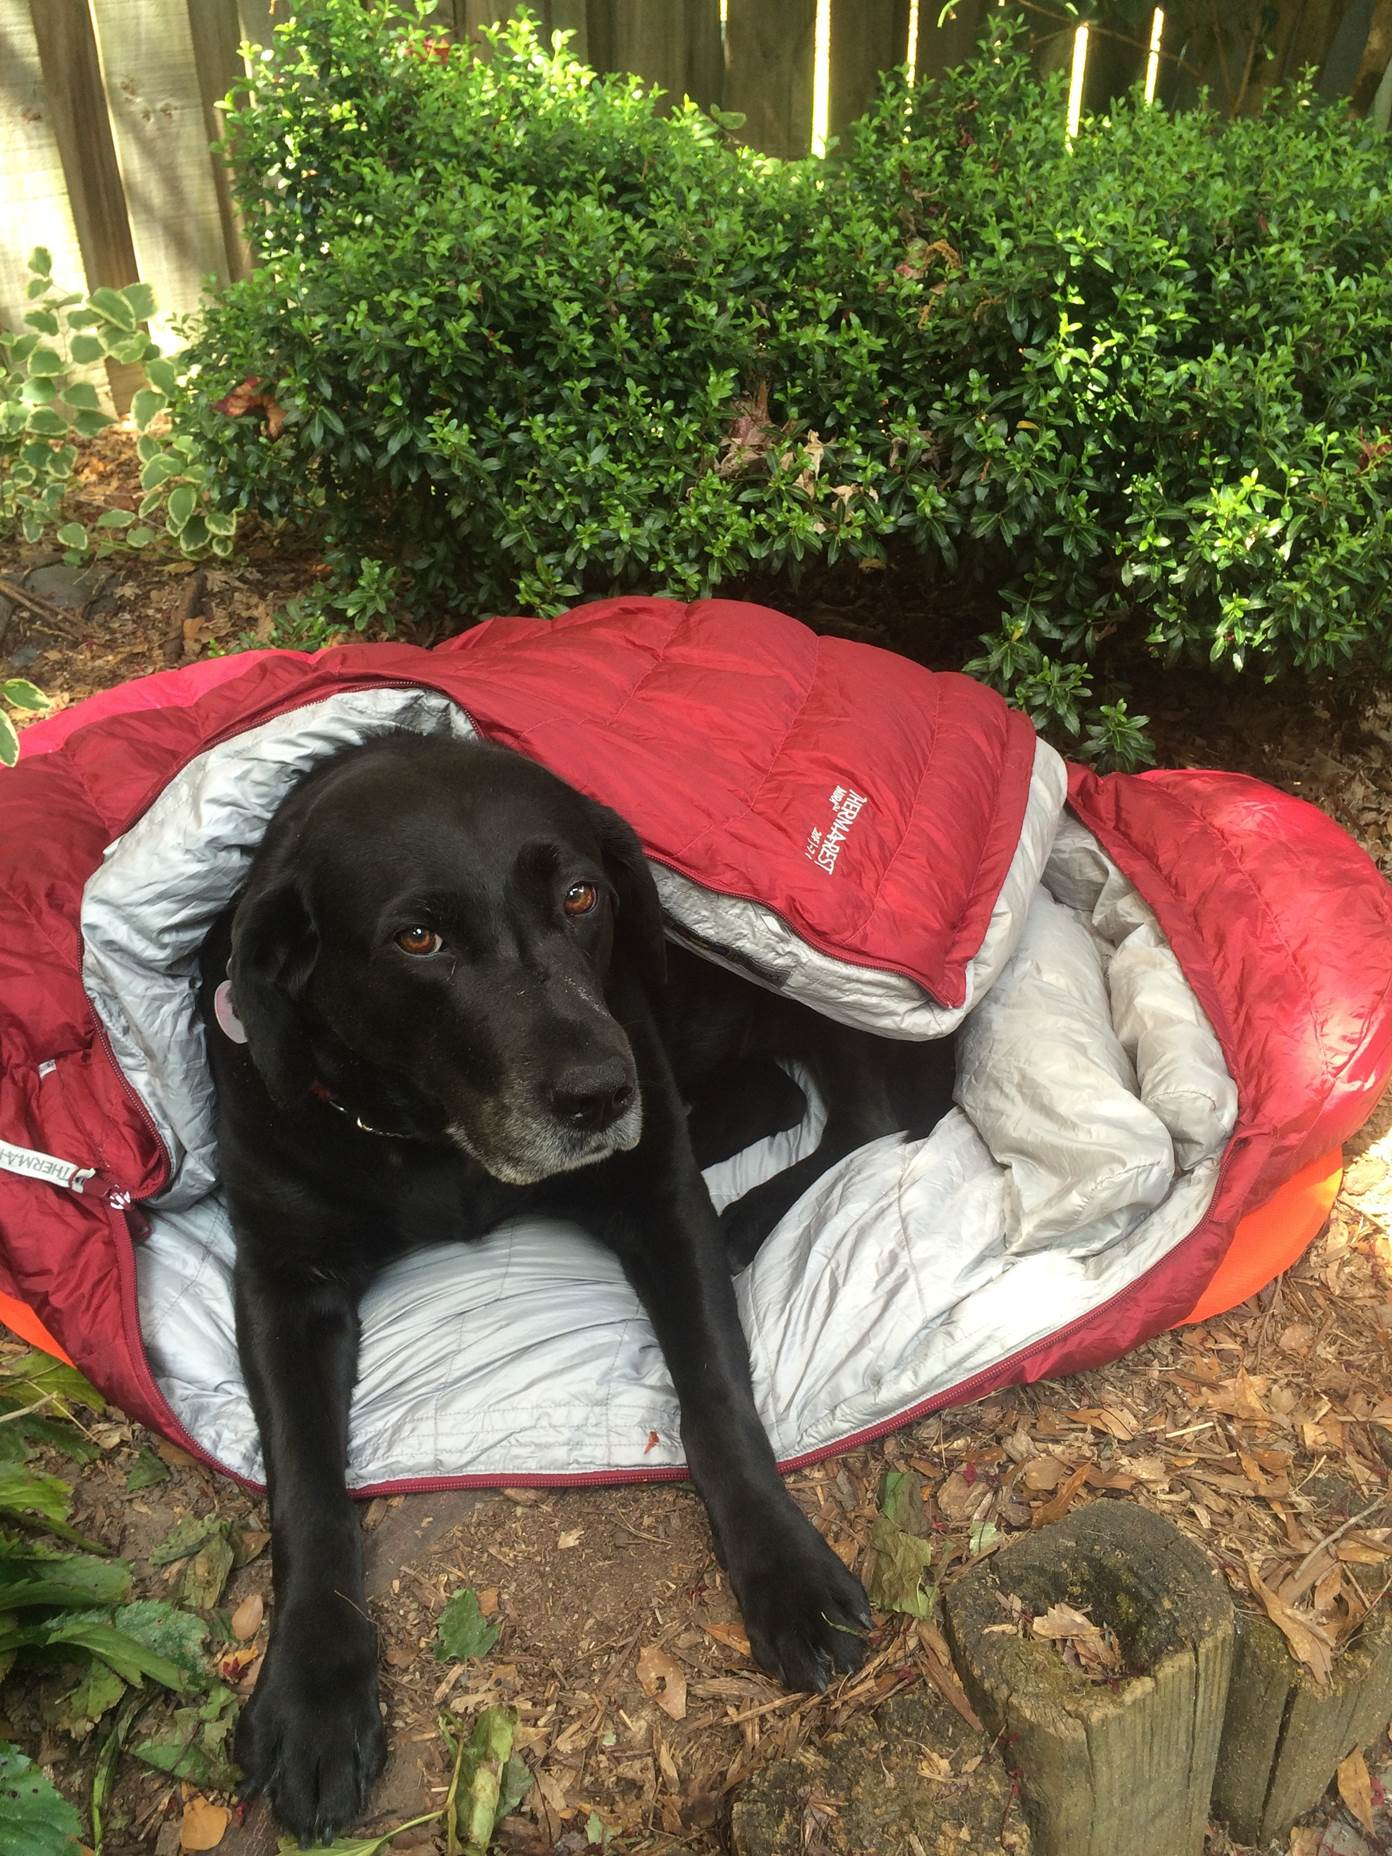 Considering a long-distance hike with your dog? - Therm-a-Rest Blog